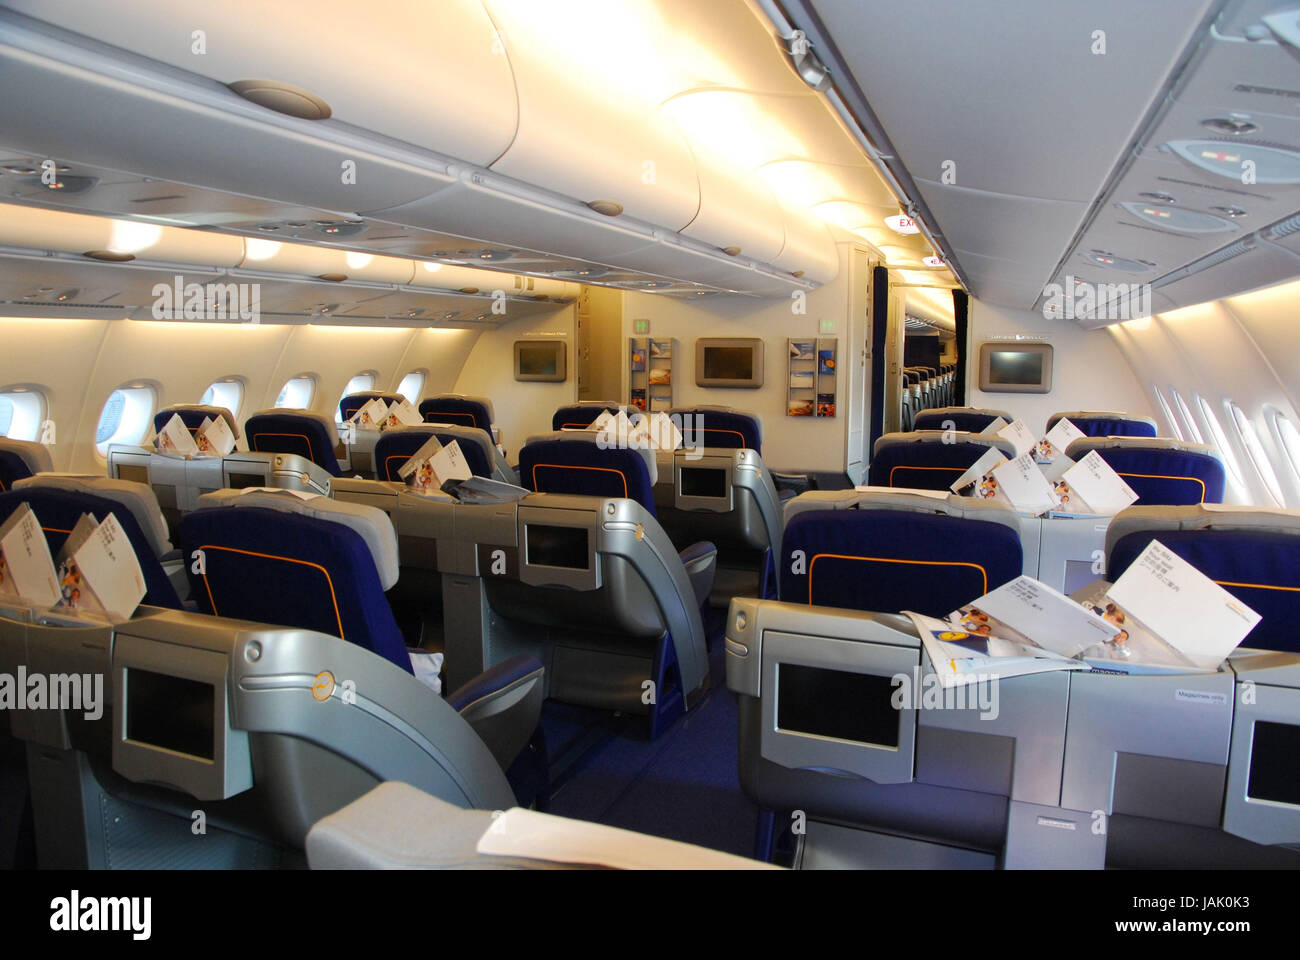 business class cabin lufthansa airbus stockfotos business class cabin lufthansa airbus bilder. Black Bedroom Furniture Sets. Home Design Ideas